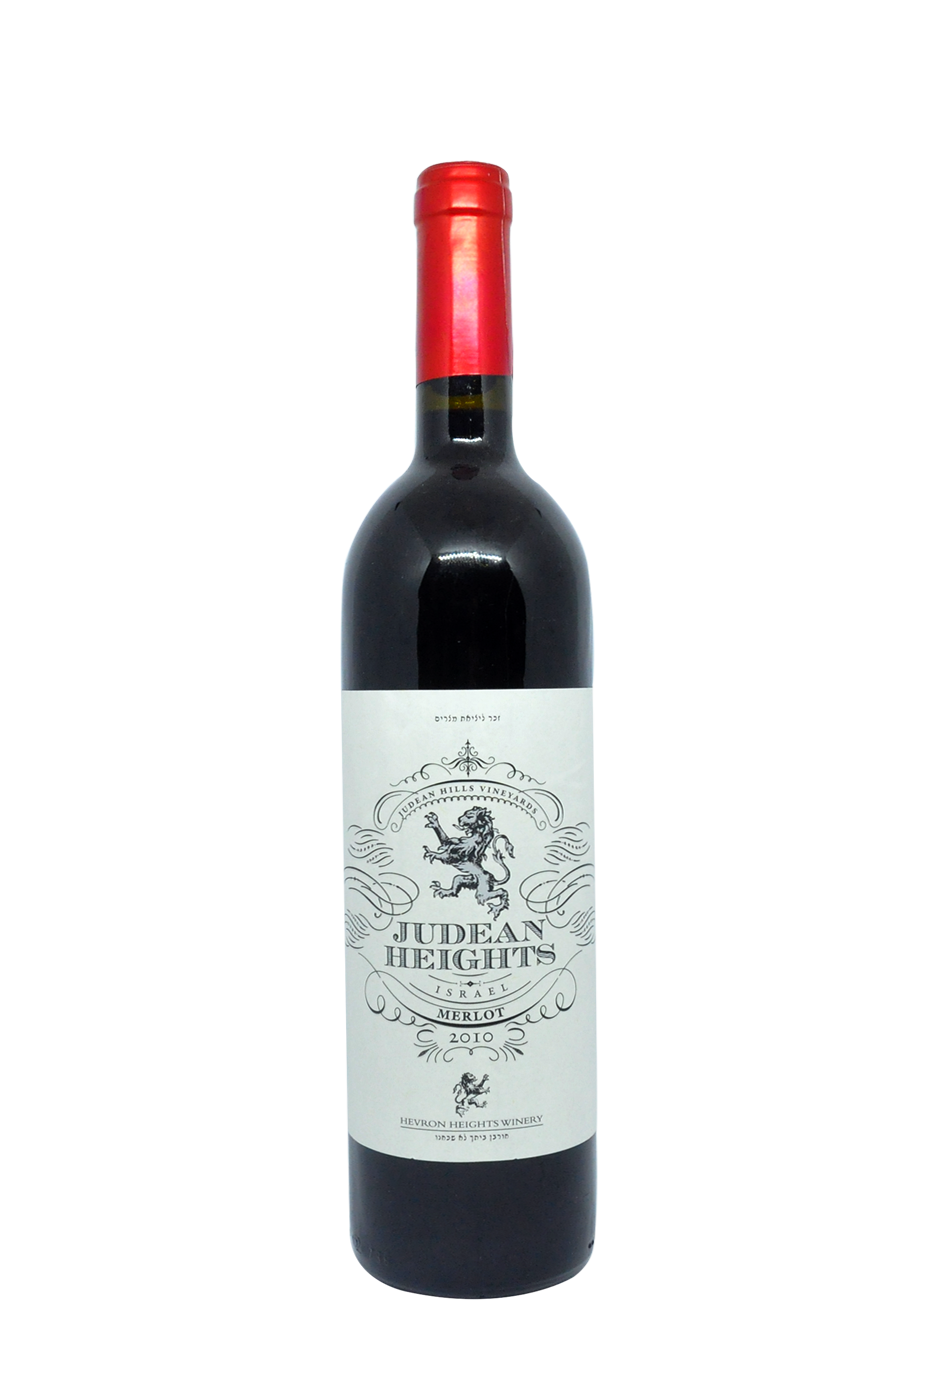 Judean Heights Merlot